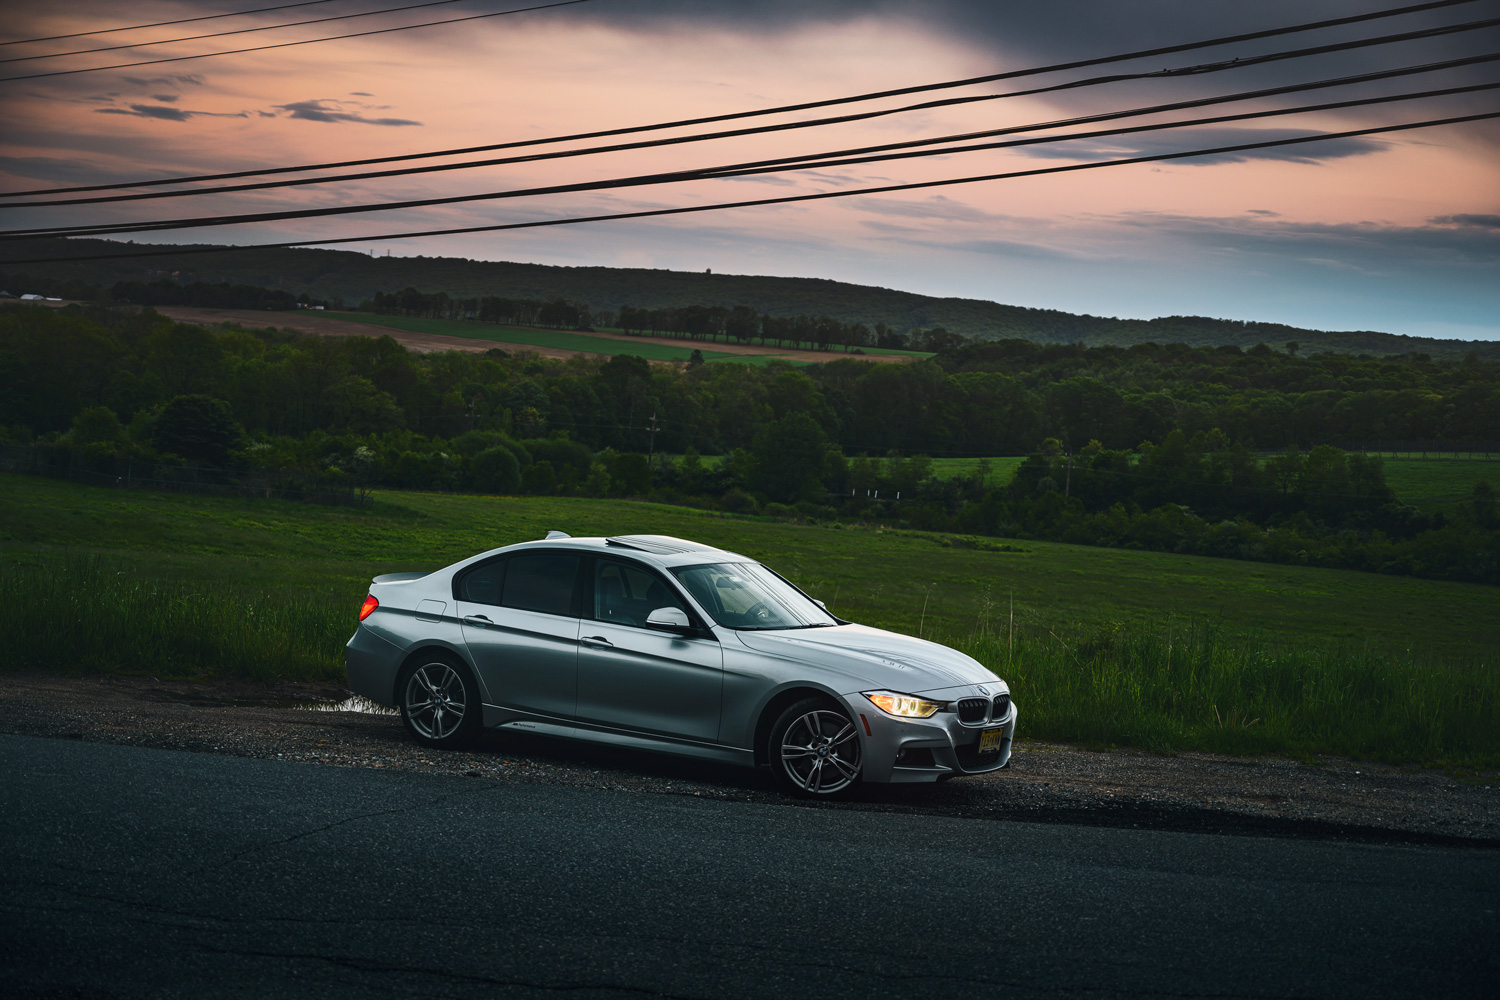 BMW 335i sunset